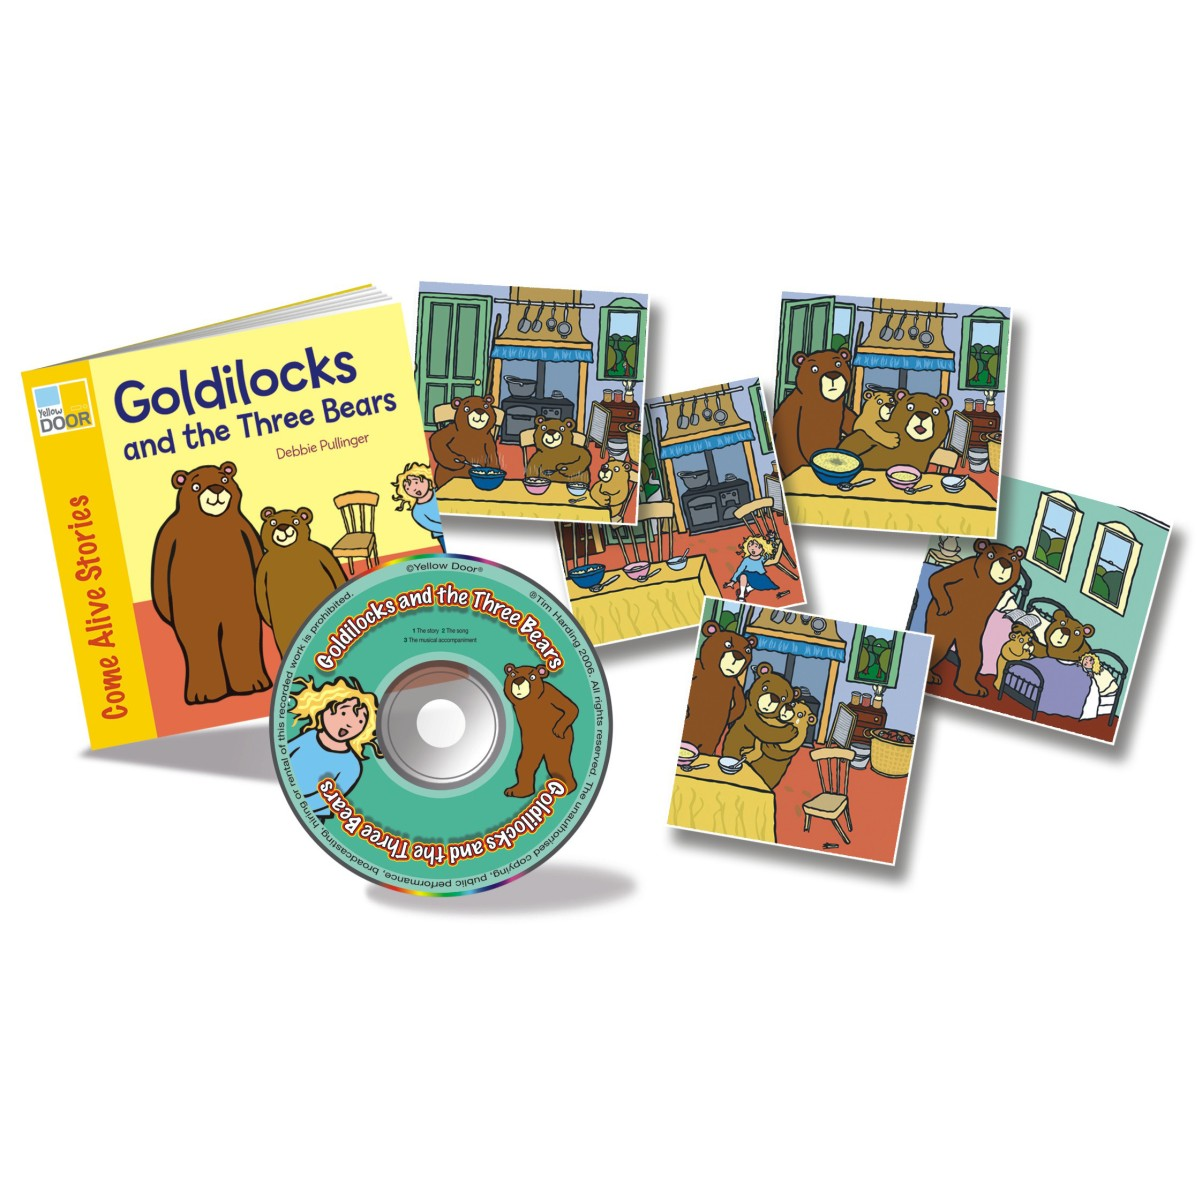 Goldilocks And The Three Bears Rhyming Story Book With Audio Cd Sequencing Cards